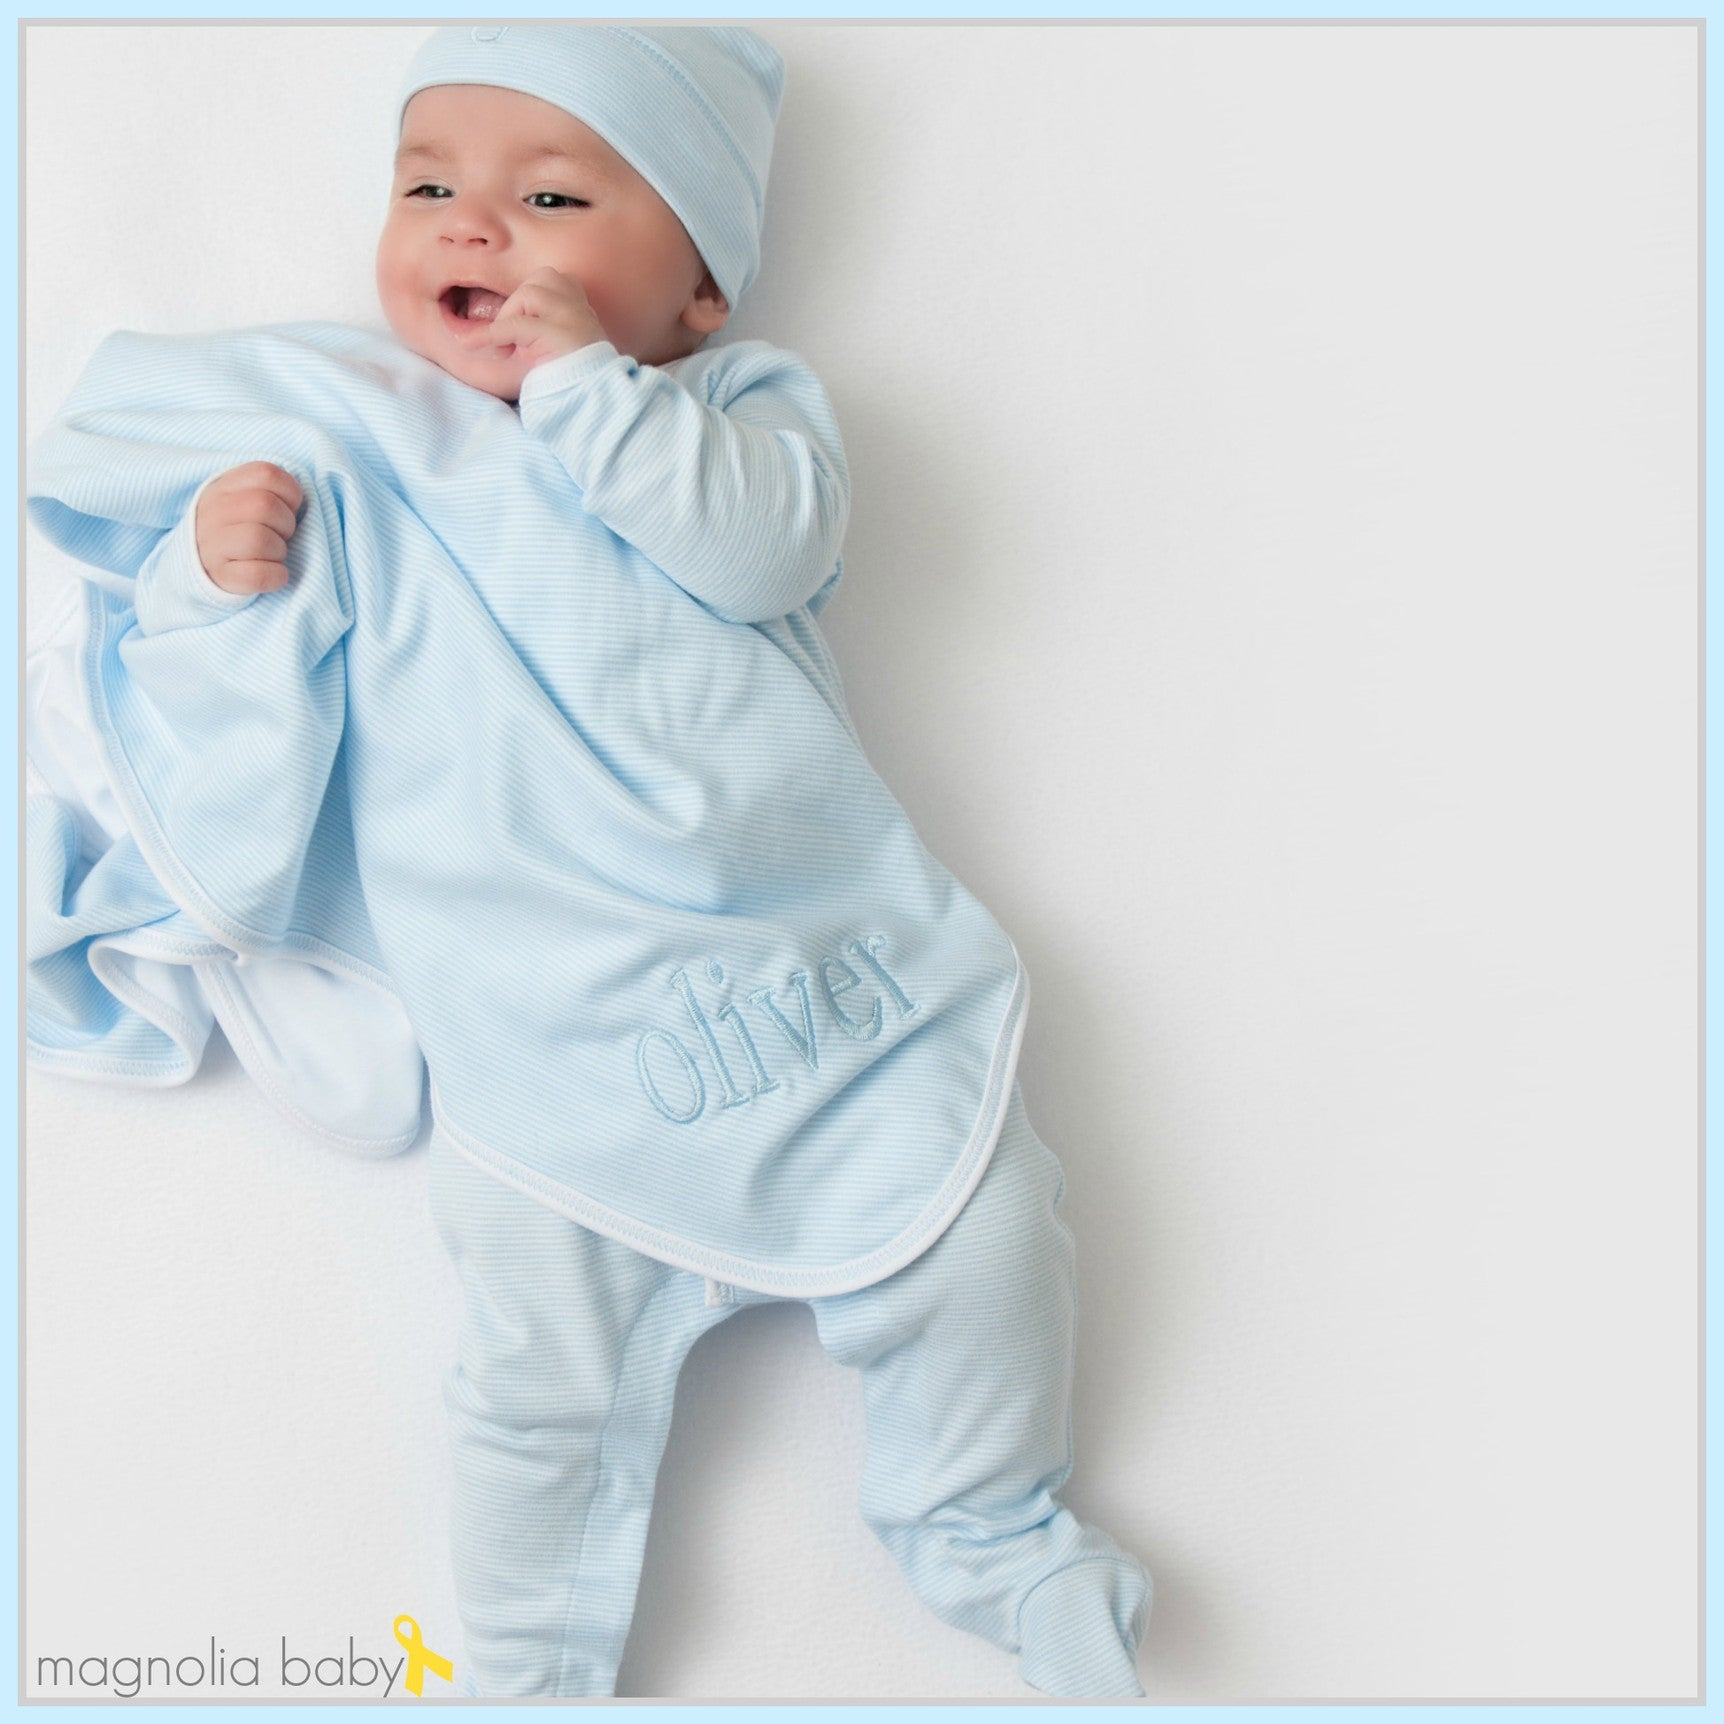 Magnolia Baby Layette Pima Cotton Baby Clothes And Pajamas